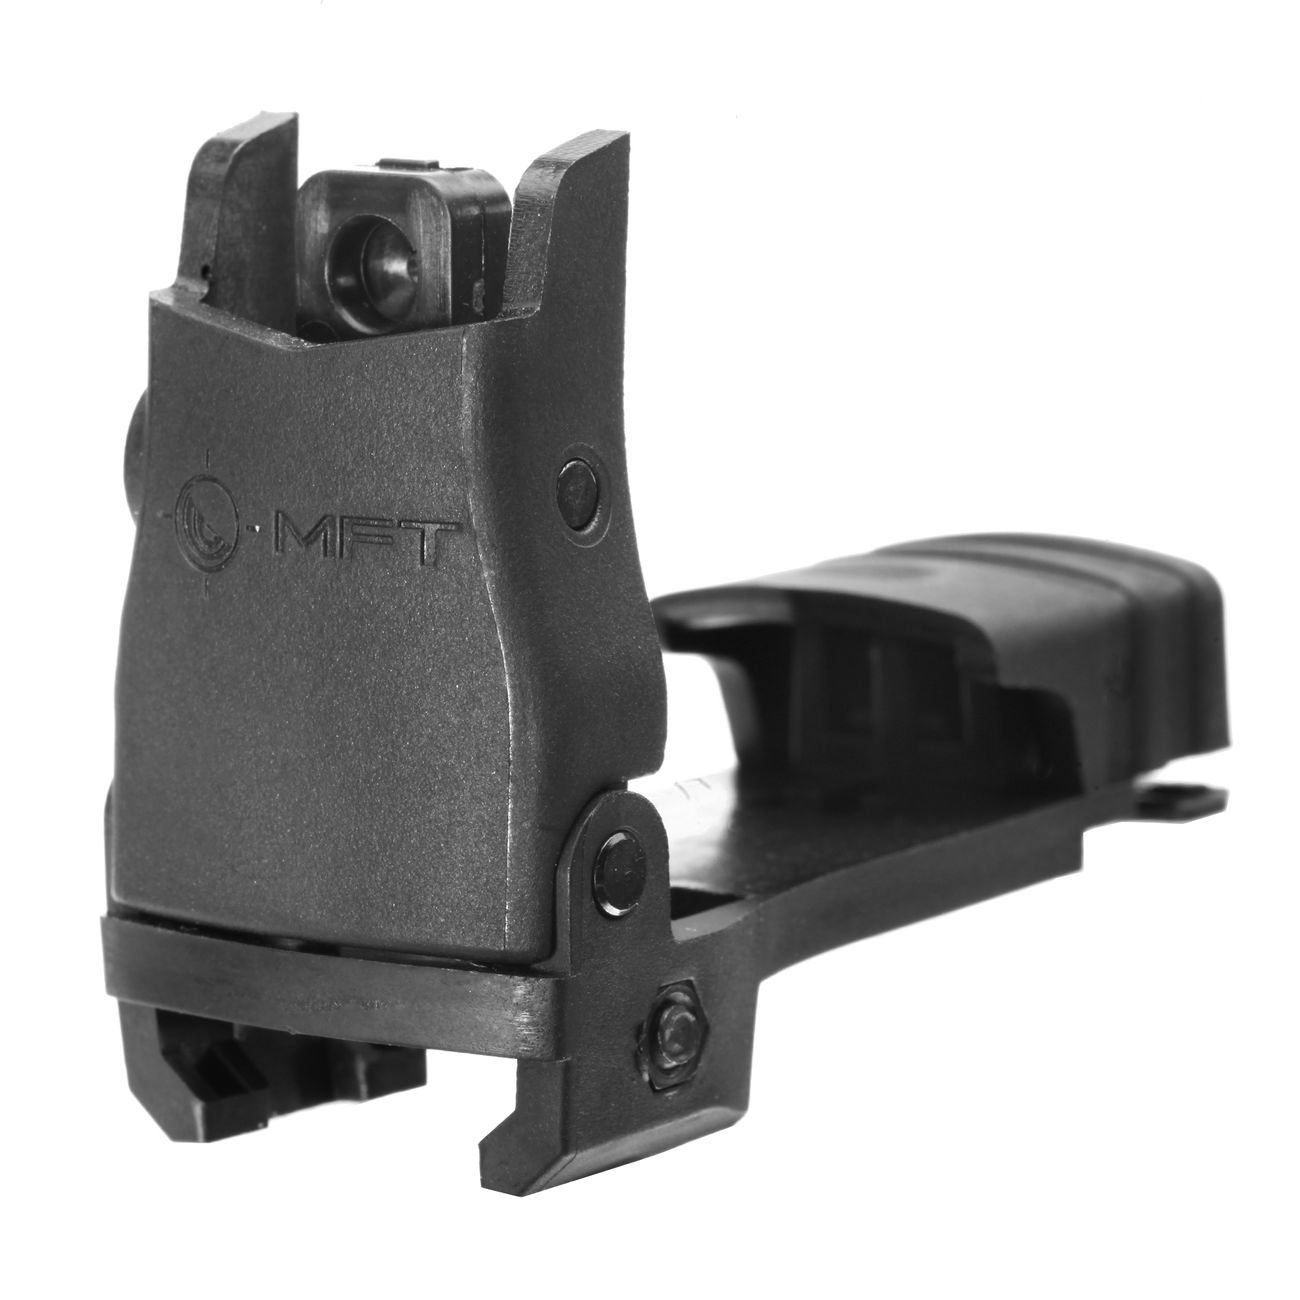 MFT BUPSWR Polymer Flip-Up Rear Sight f. 21mm Schienen schwarz 0